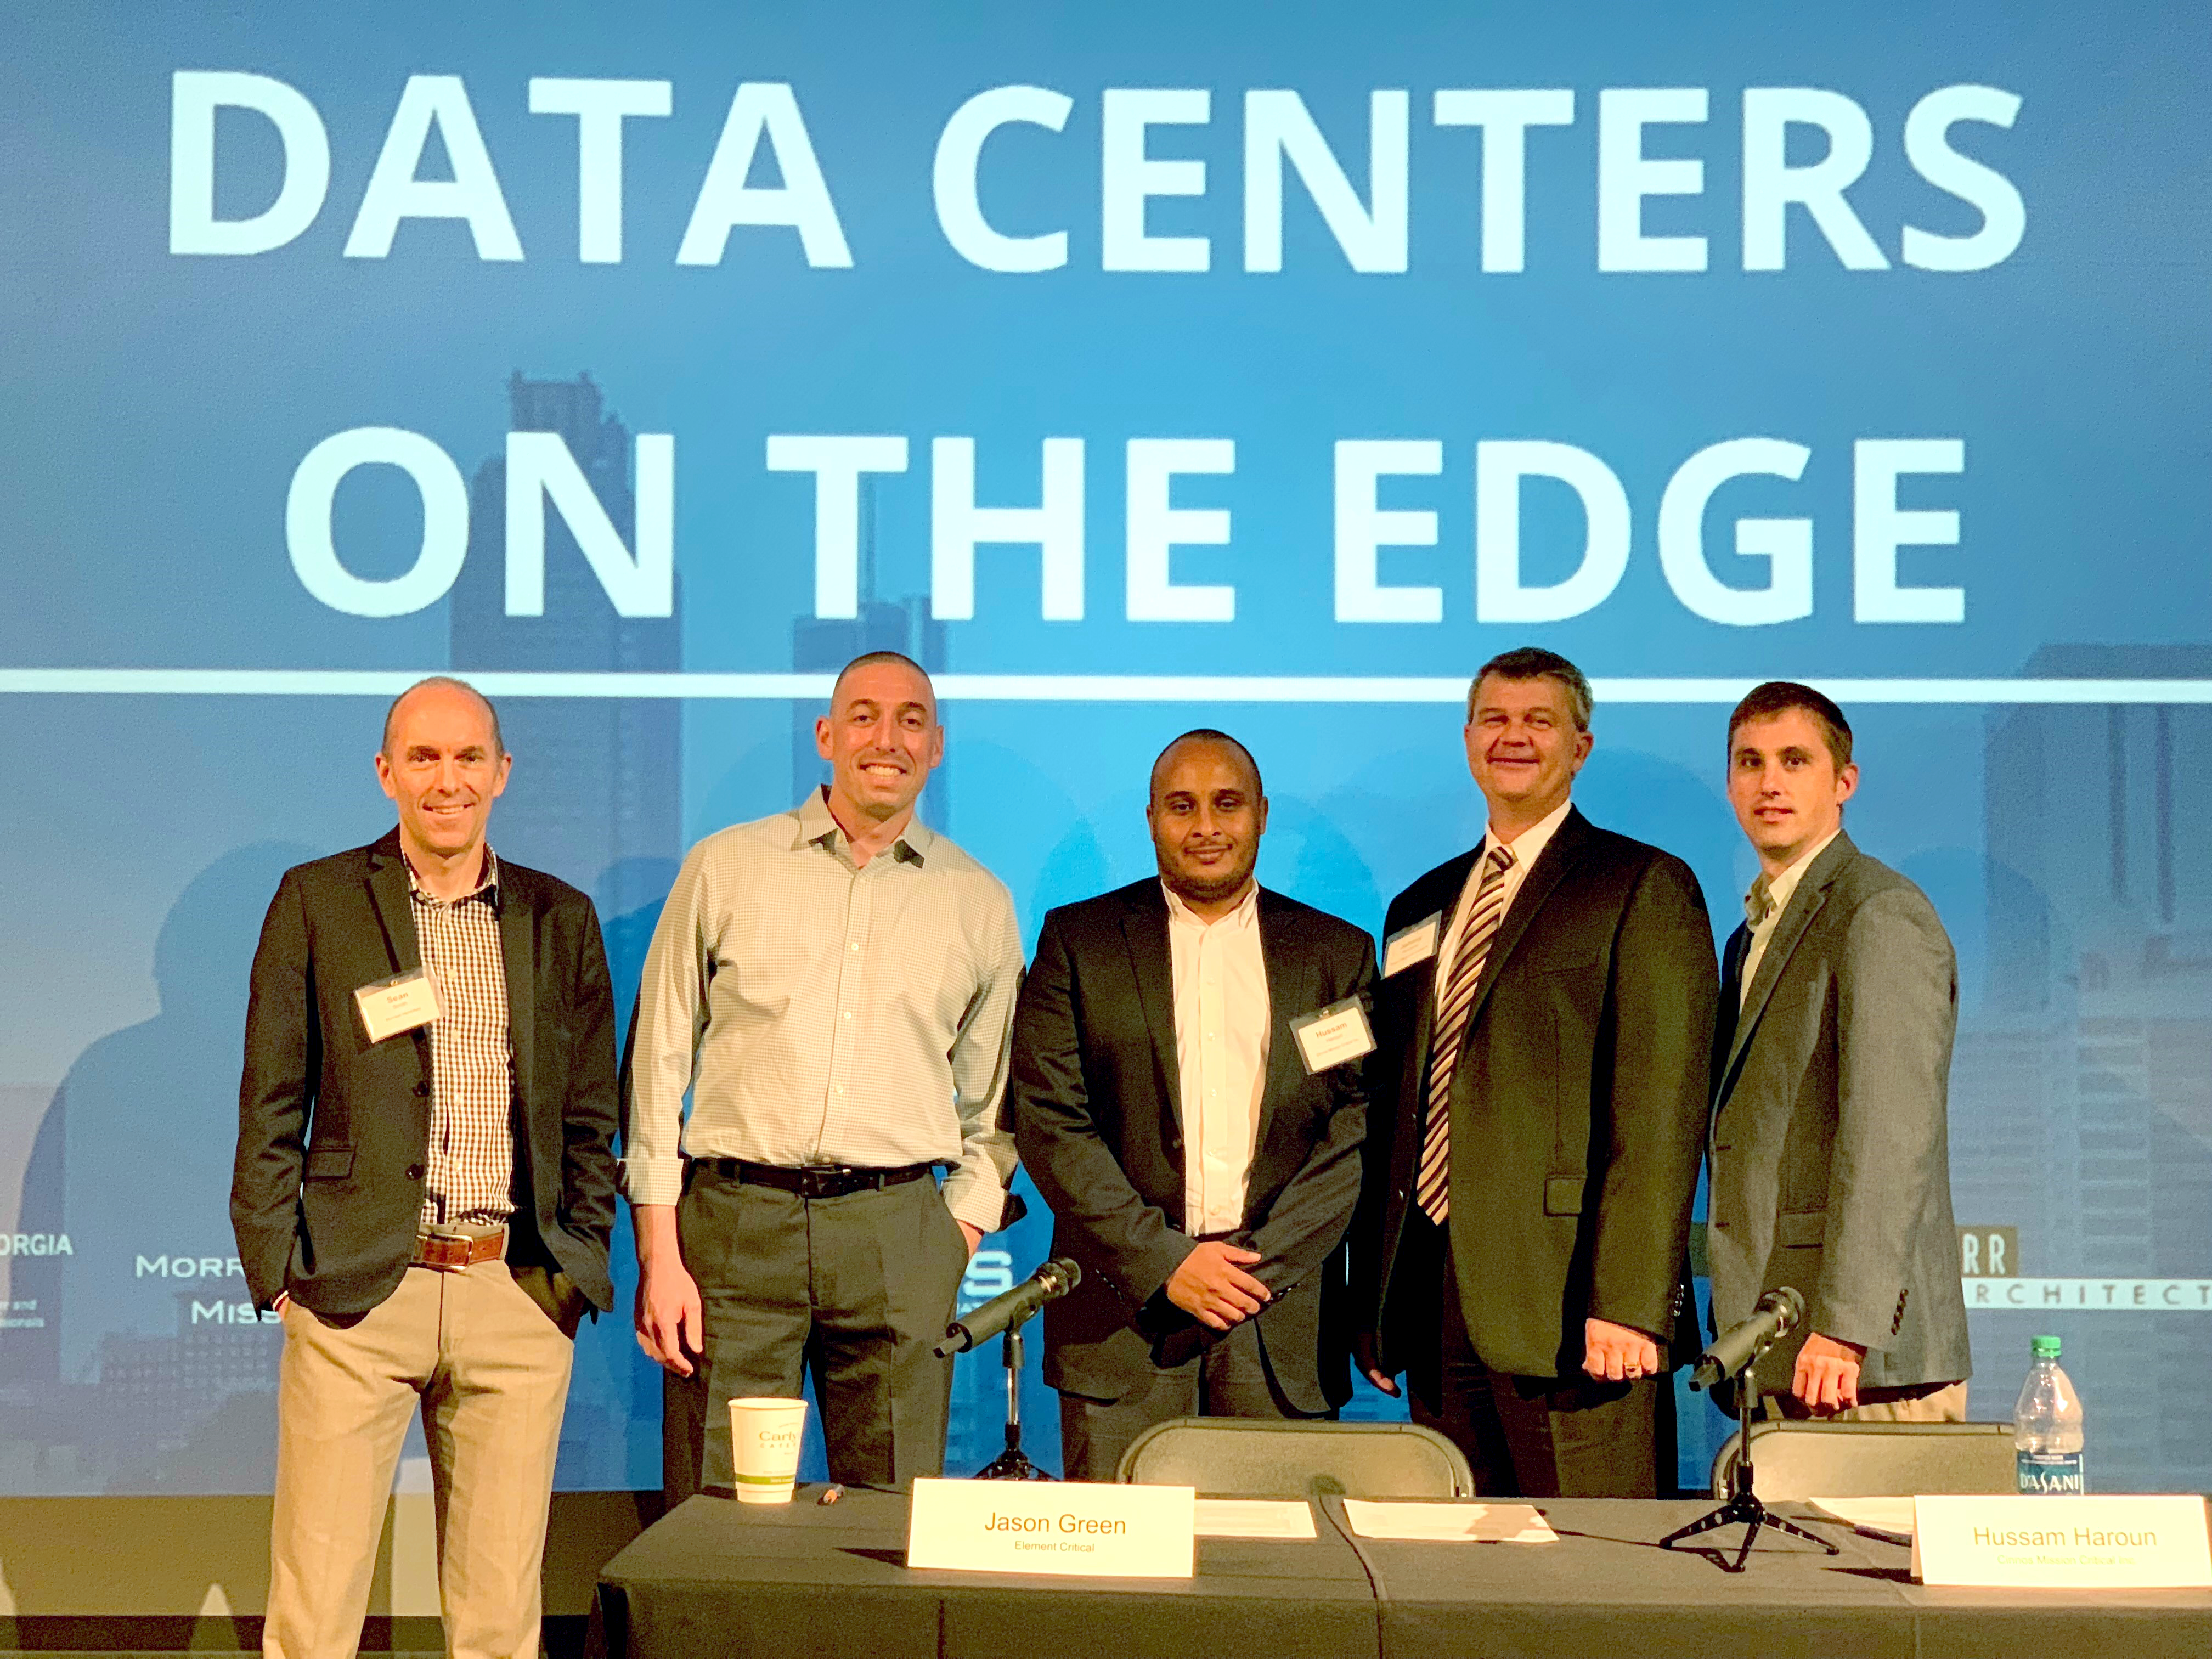 Sean, Jason, Hussam, Johnny and Dustin at Data Centers On The Edge Event 2018_edit